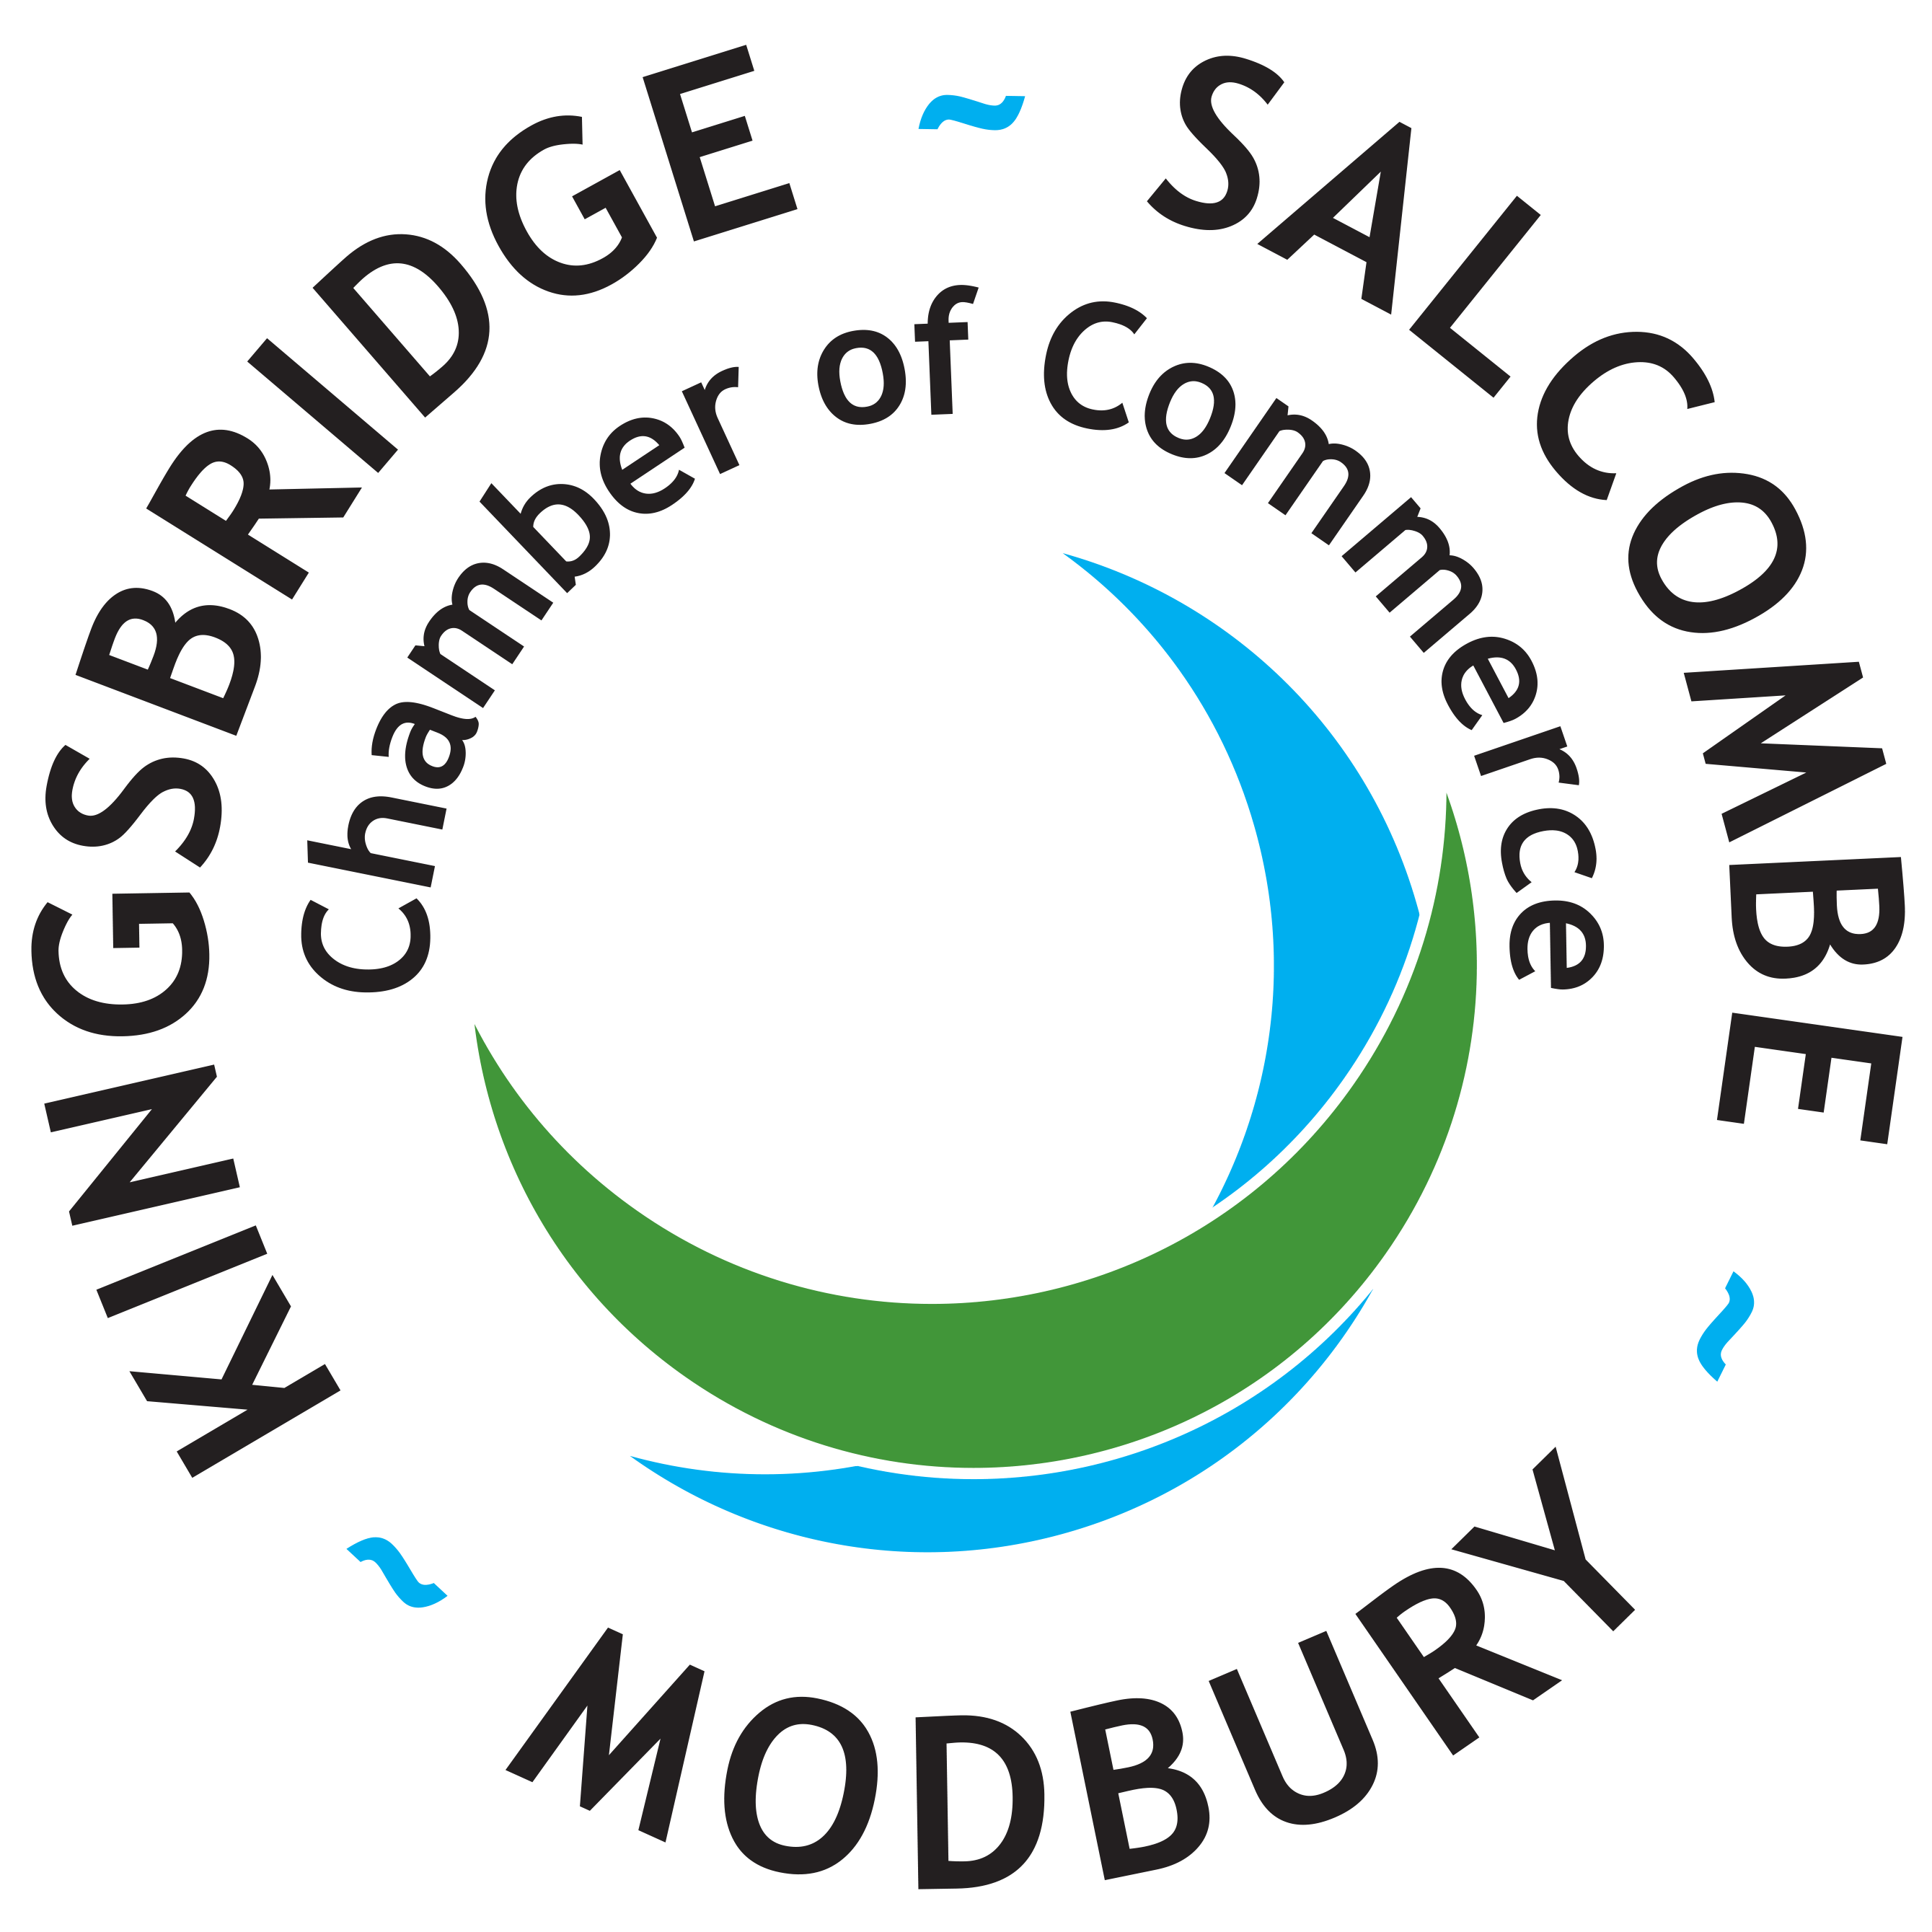 Kingsbridge & Salcombe Chamber of Commerce